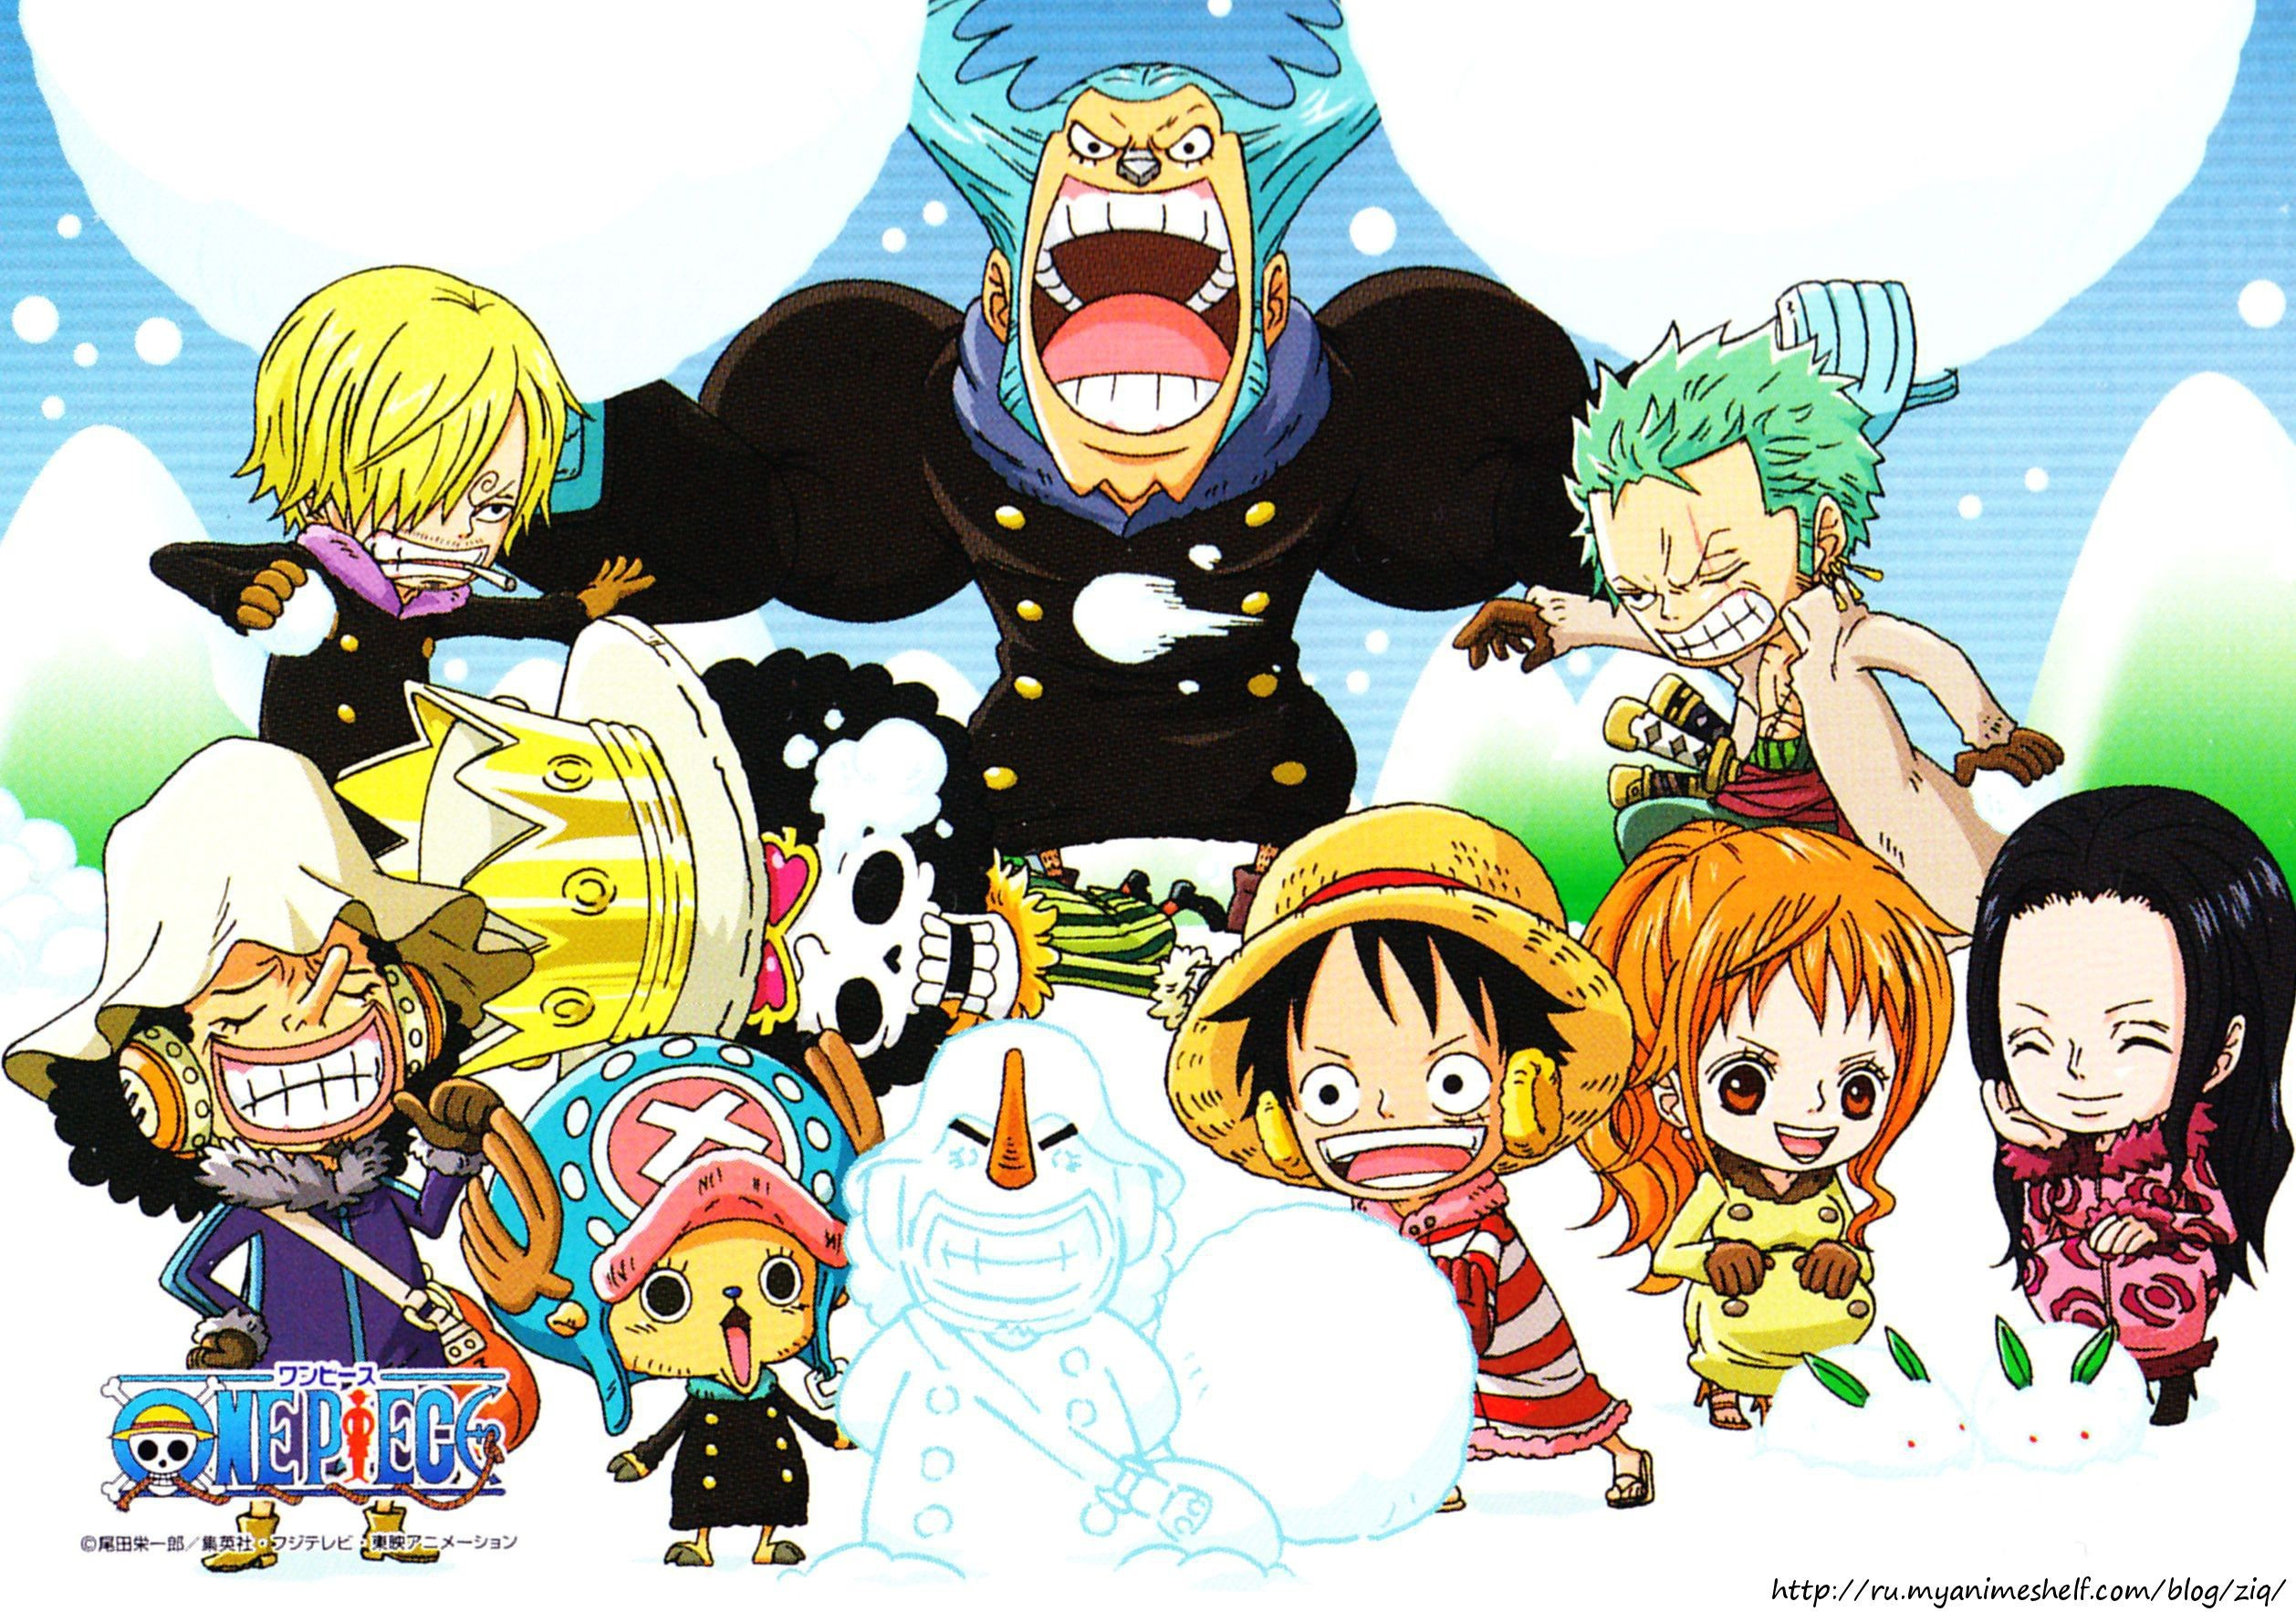 2516x1766 Anime - One Piece Franky (One Piece) Zoro Roronoa Sanji (One Piece)